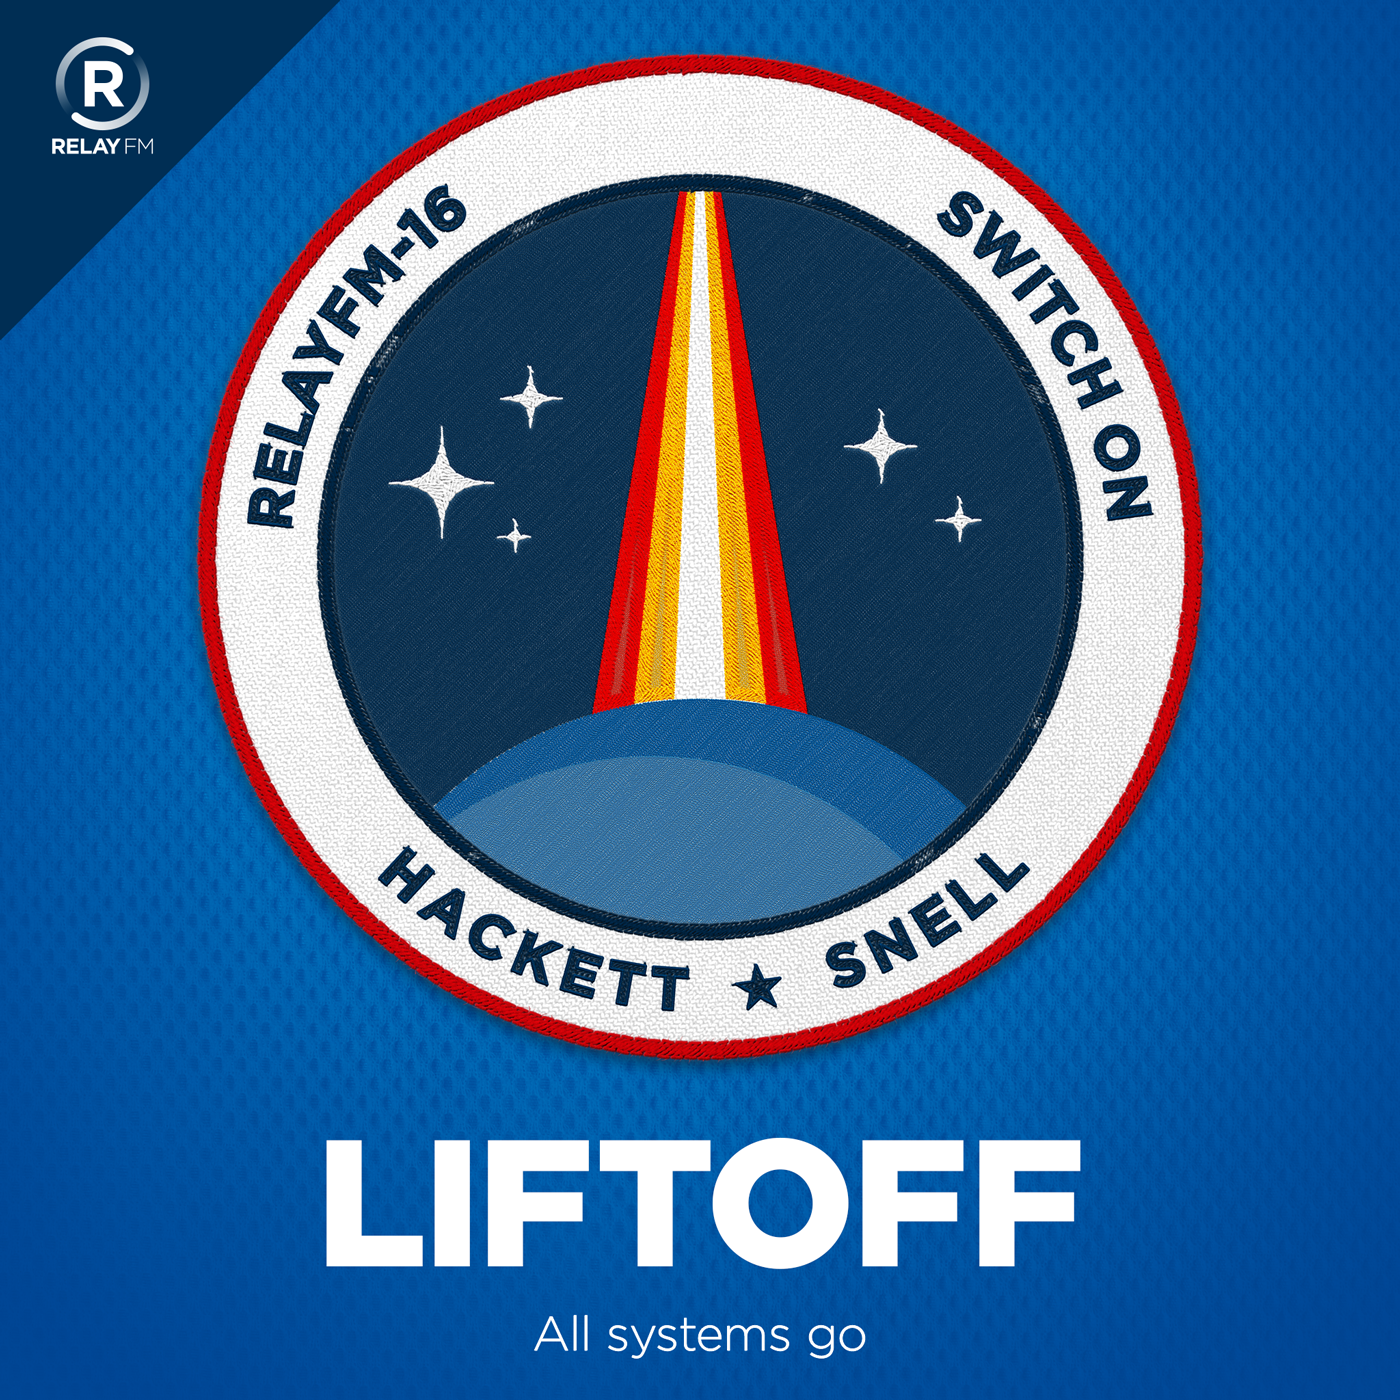 Broadcast artwork liftoff artwork